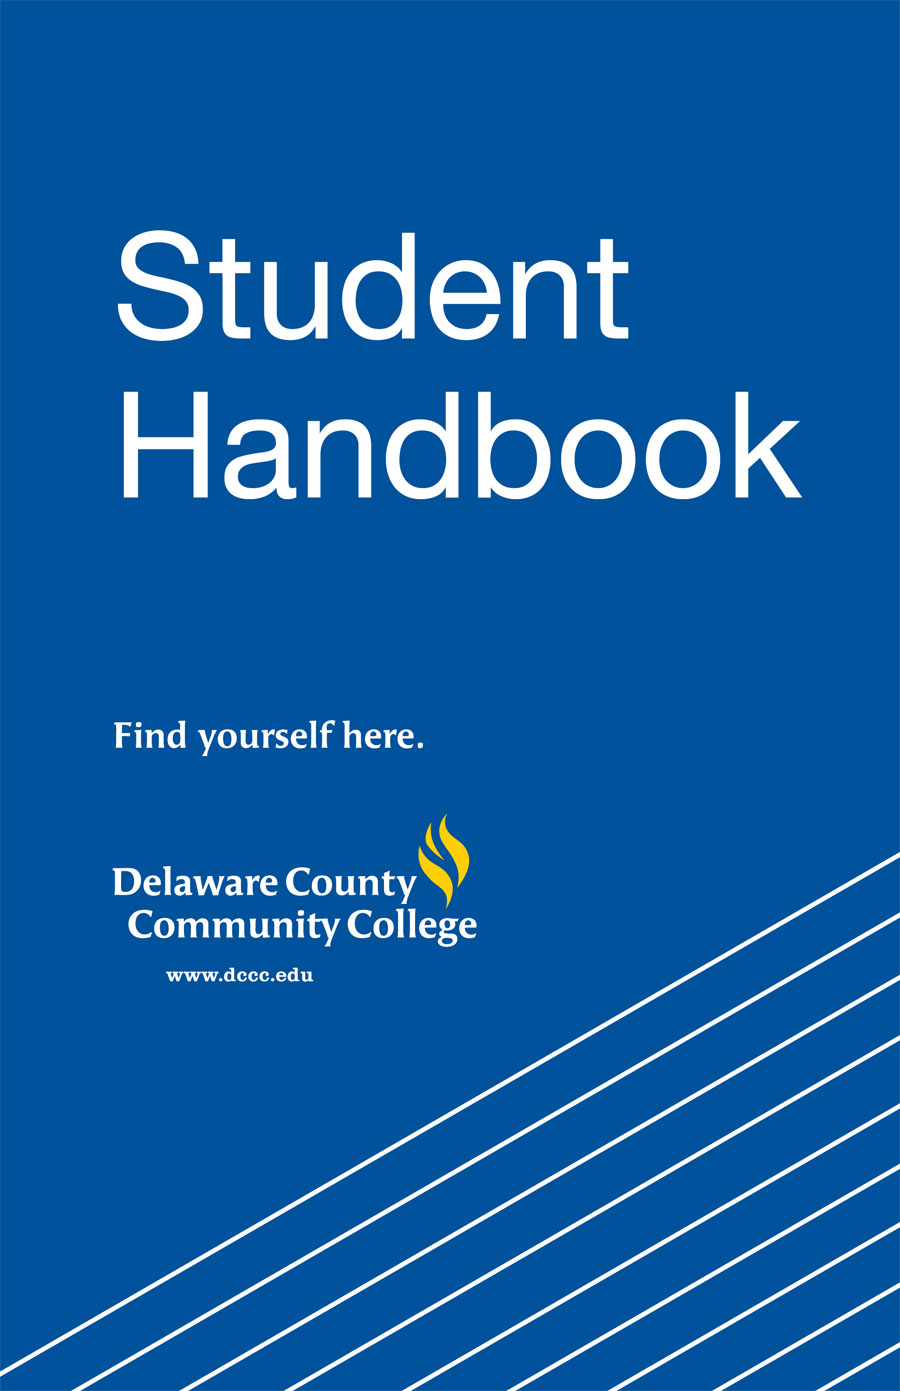 Student Handbook - Delaware County Community College For Delaware County Community Colllege Calendar